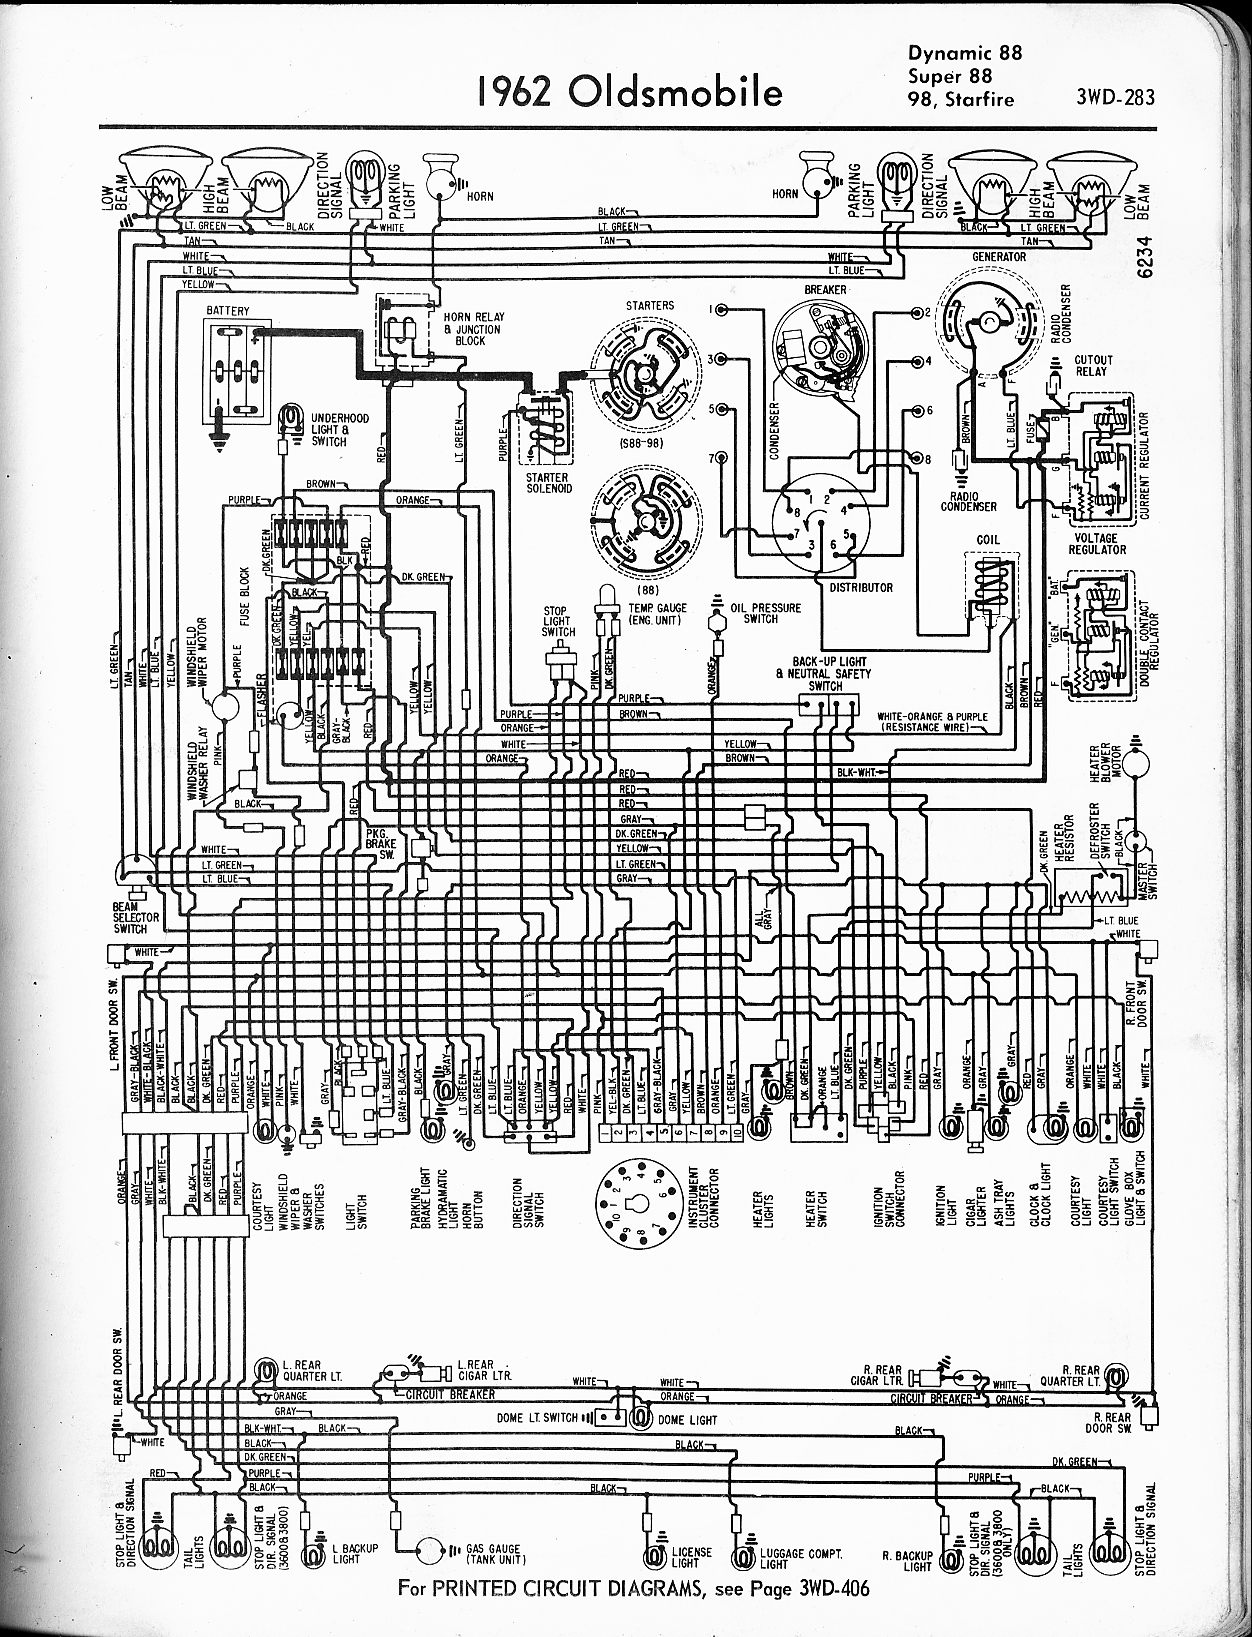 MWire5765 283 oldsmobile wiring diagrams the old car manual project old car manual project wiring diagrams at soozxer.org